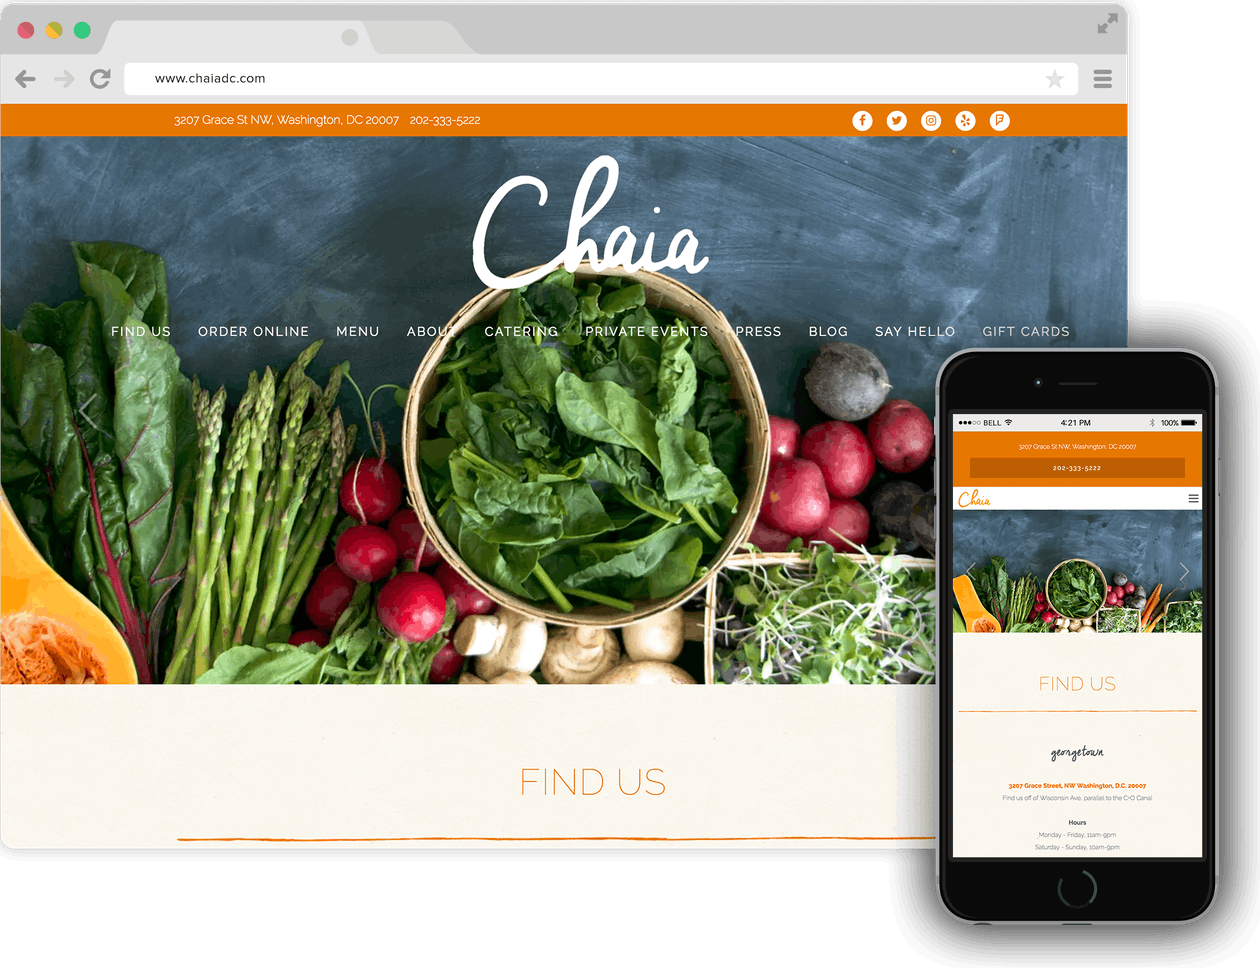 Chaia website